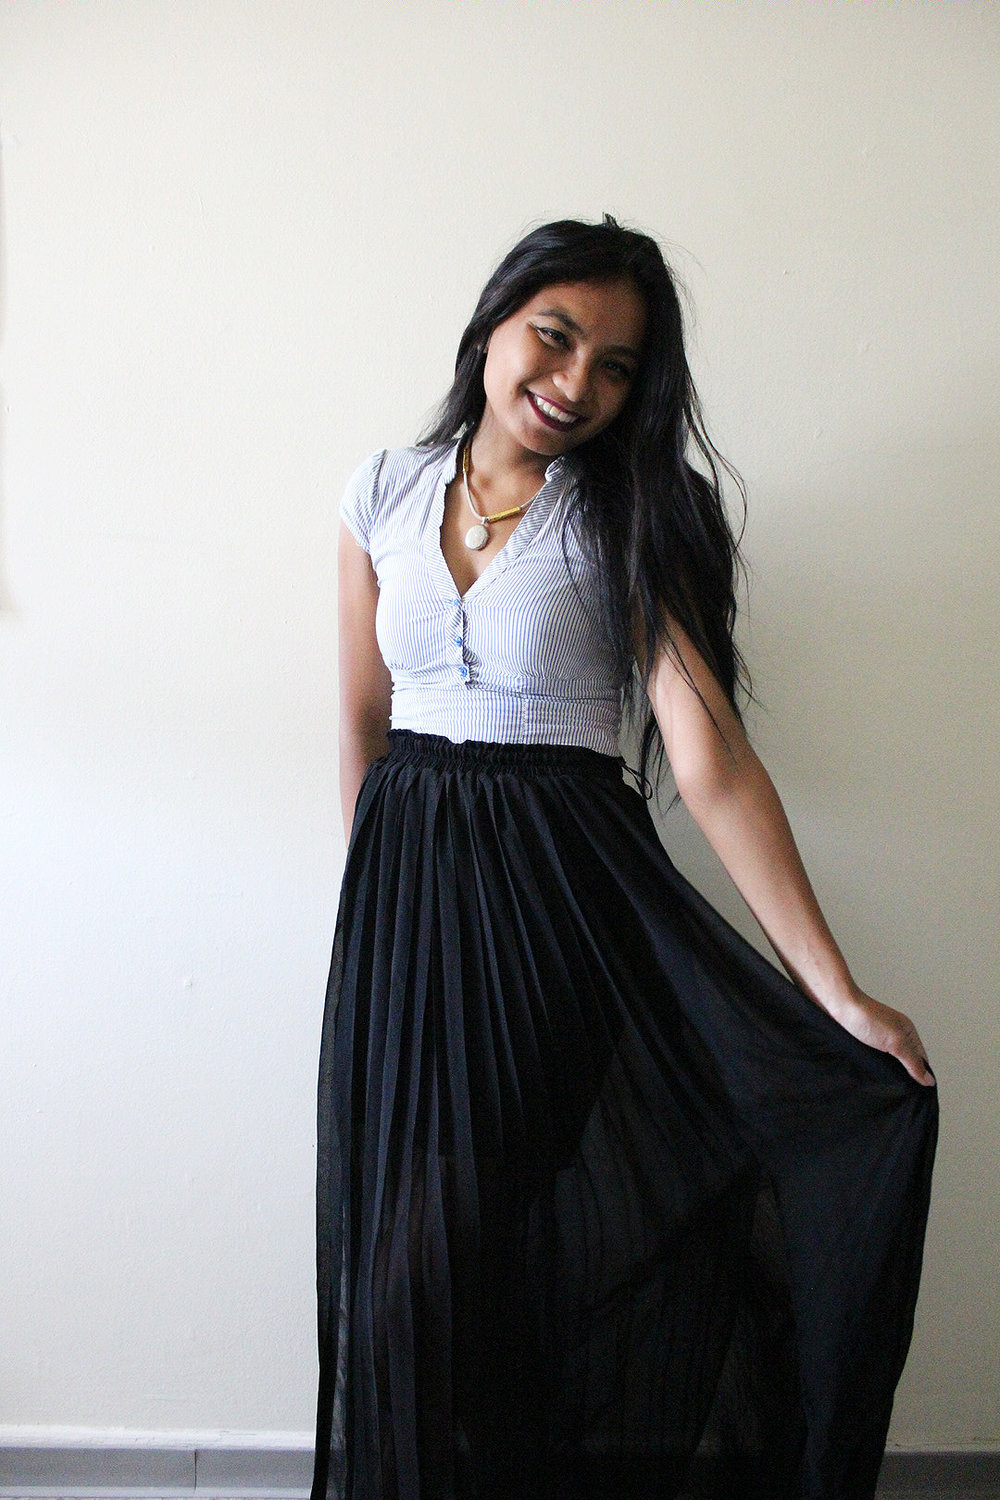 Maxi-Skirt-Button-Down-Work-Appropriate-Office-Wear-Style-Blogger-Fashionista-LINDATENCHITRAN-8-1616x1080.jpg